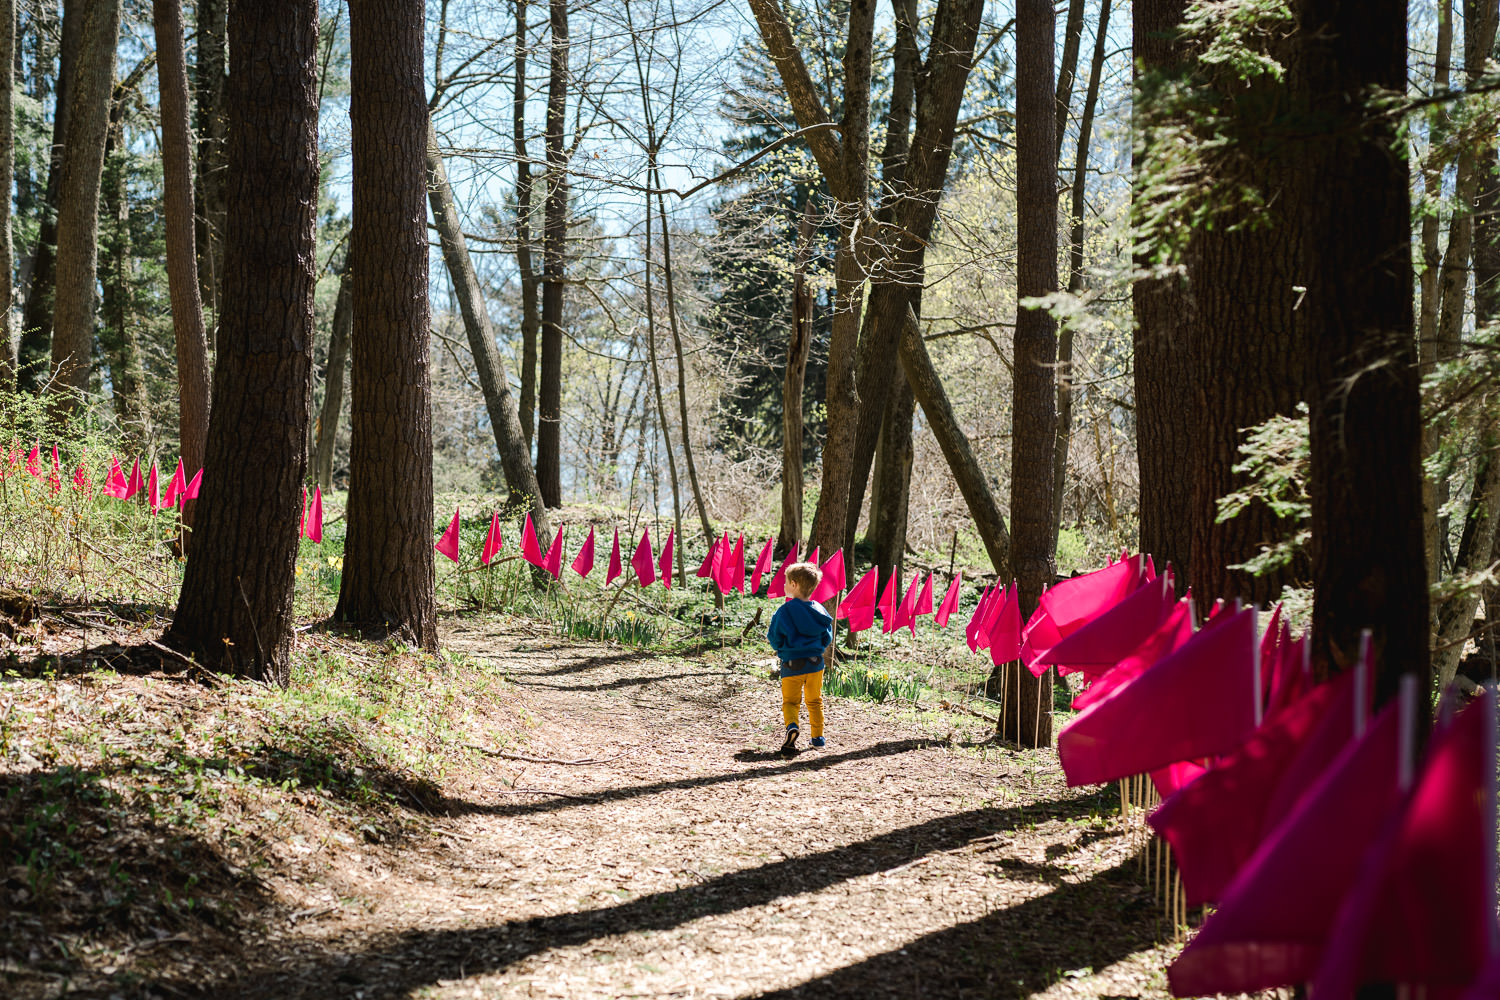 A little boy walks along a trail lined with flags.